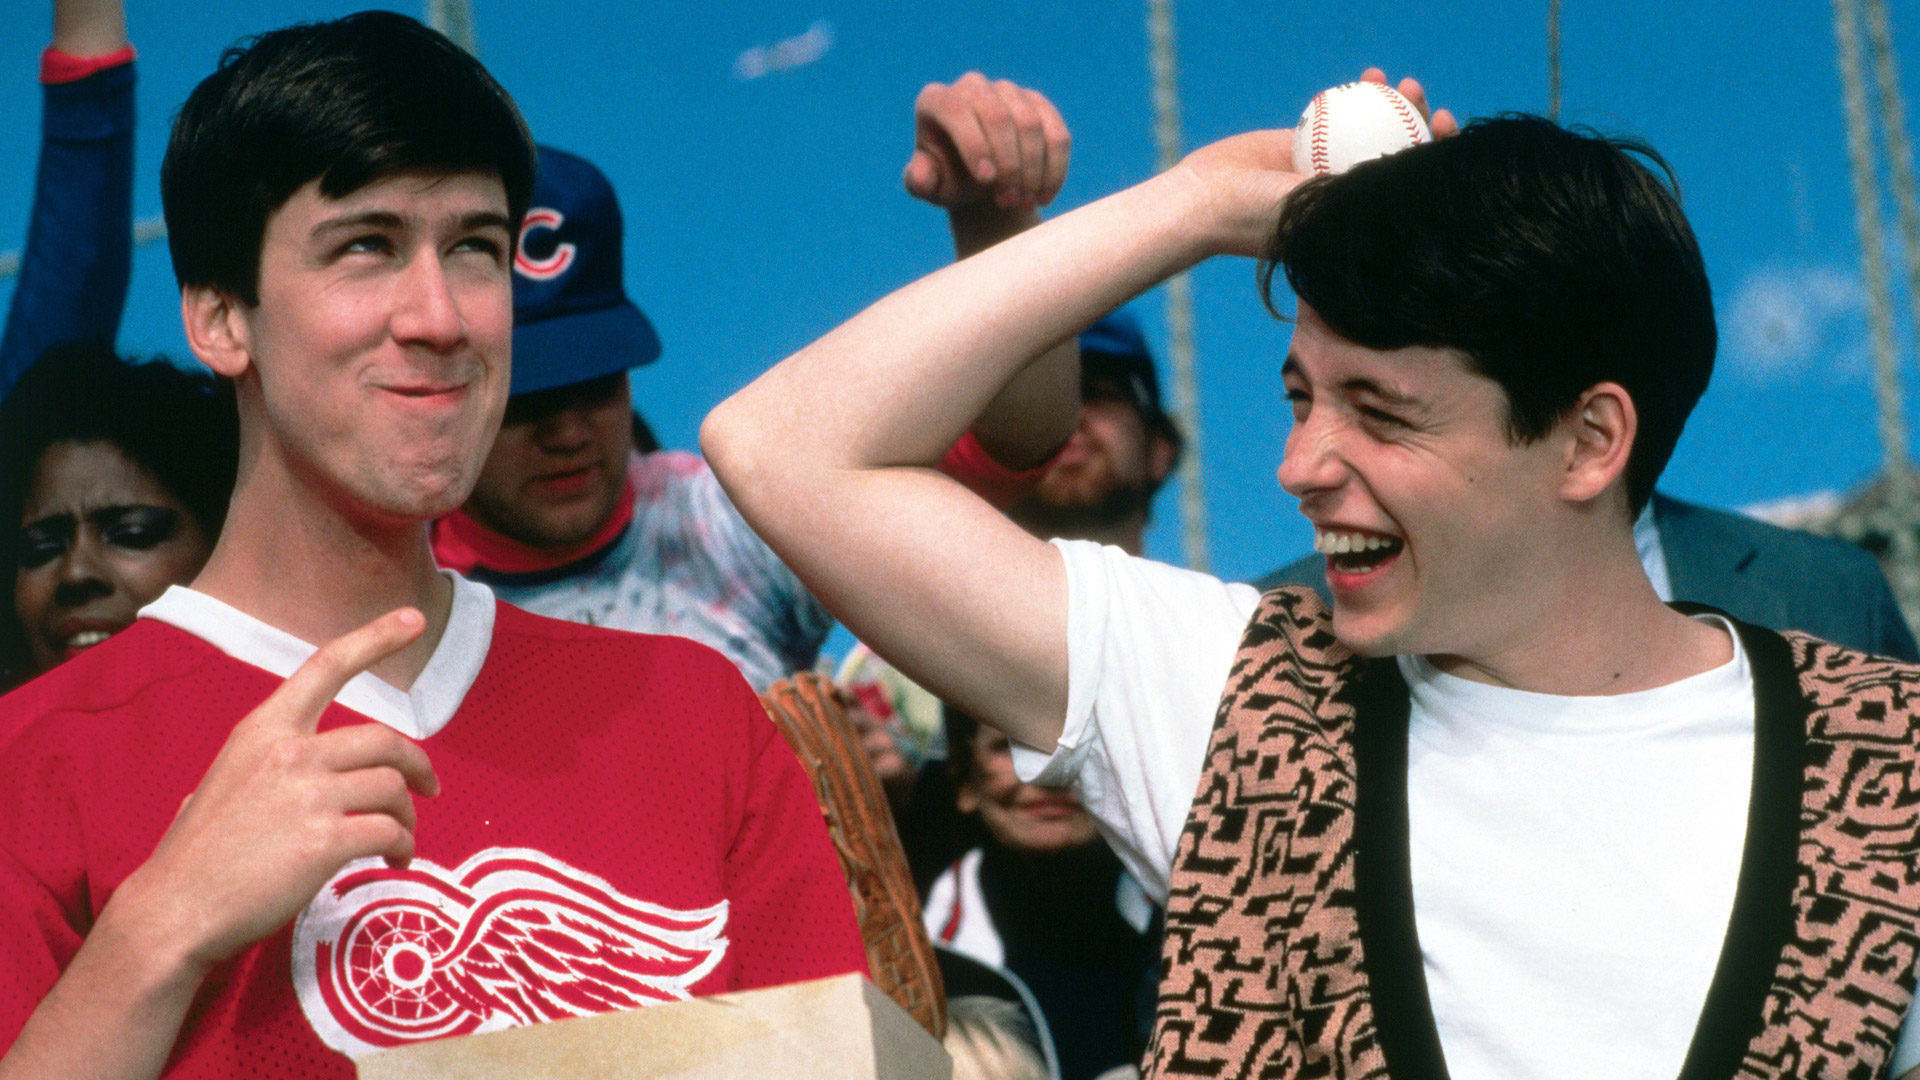 Alan Ruck and Matthew Broderick in Ferris Bueller's Day Off